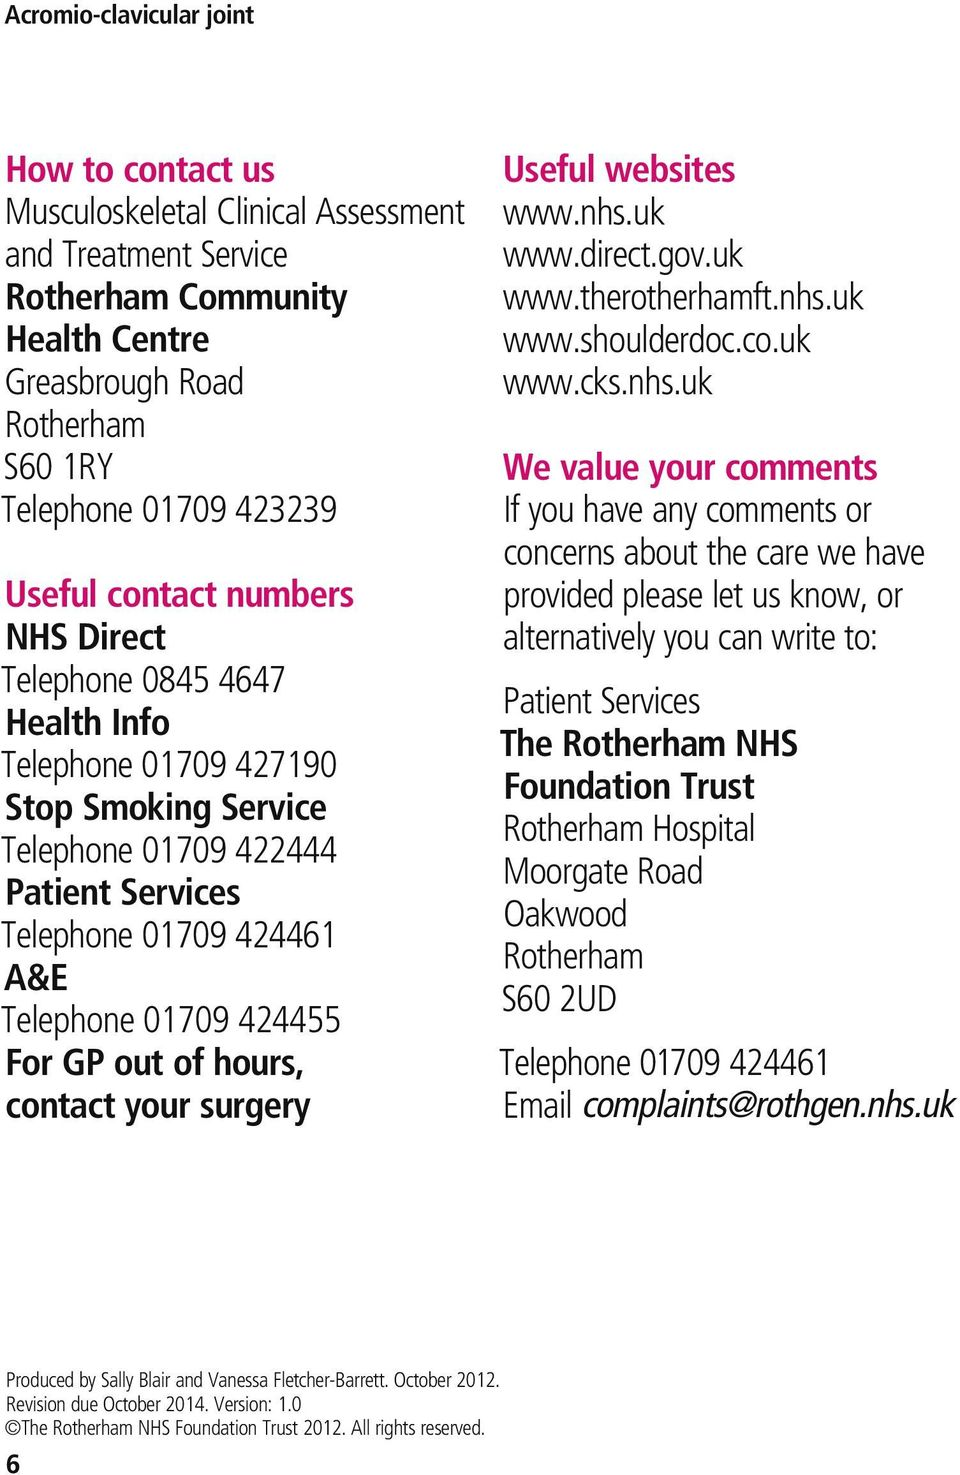 contact your surgery Useful websites www.nhs.